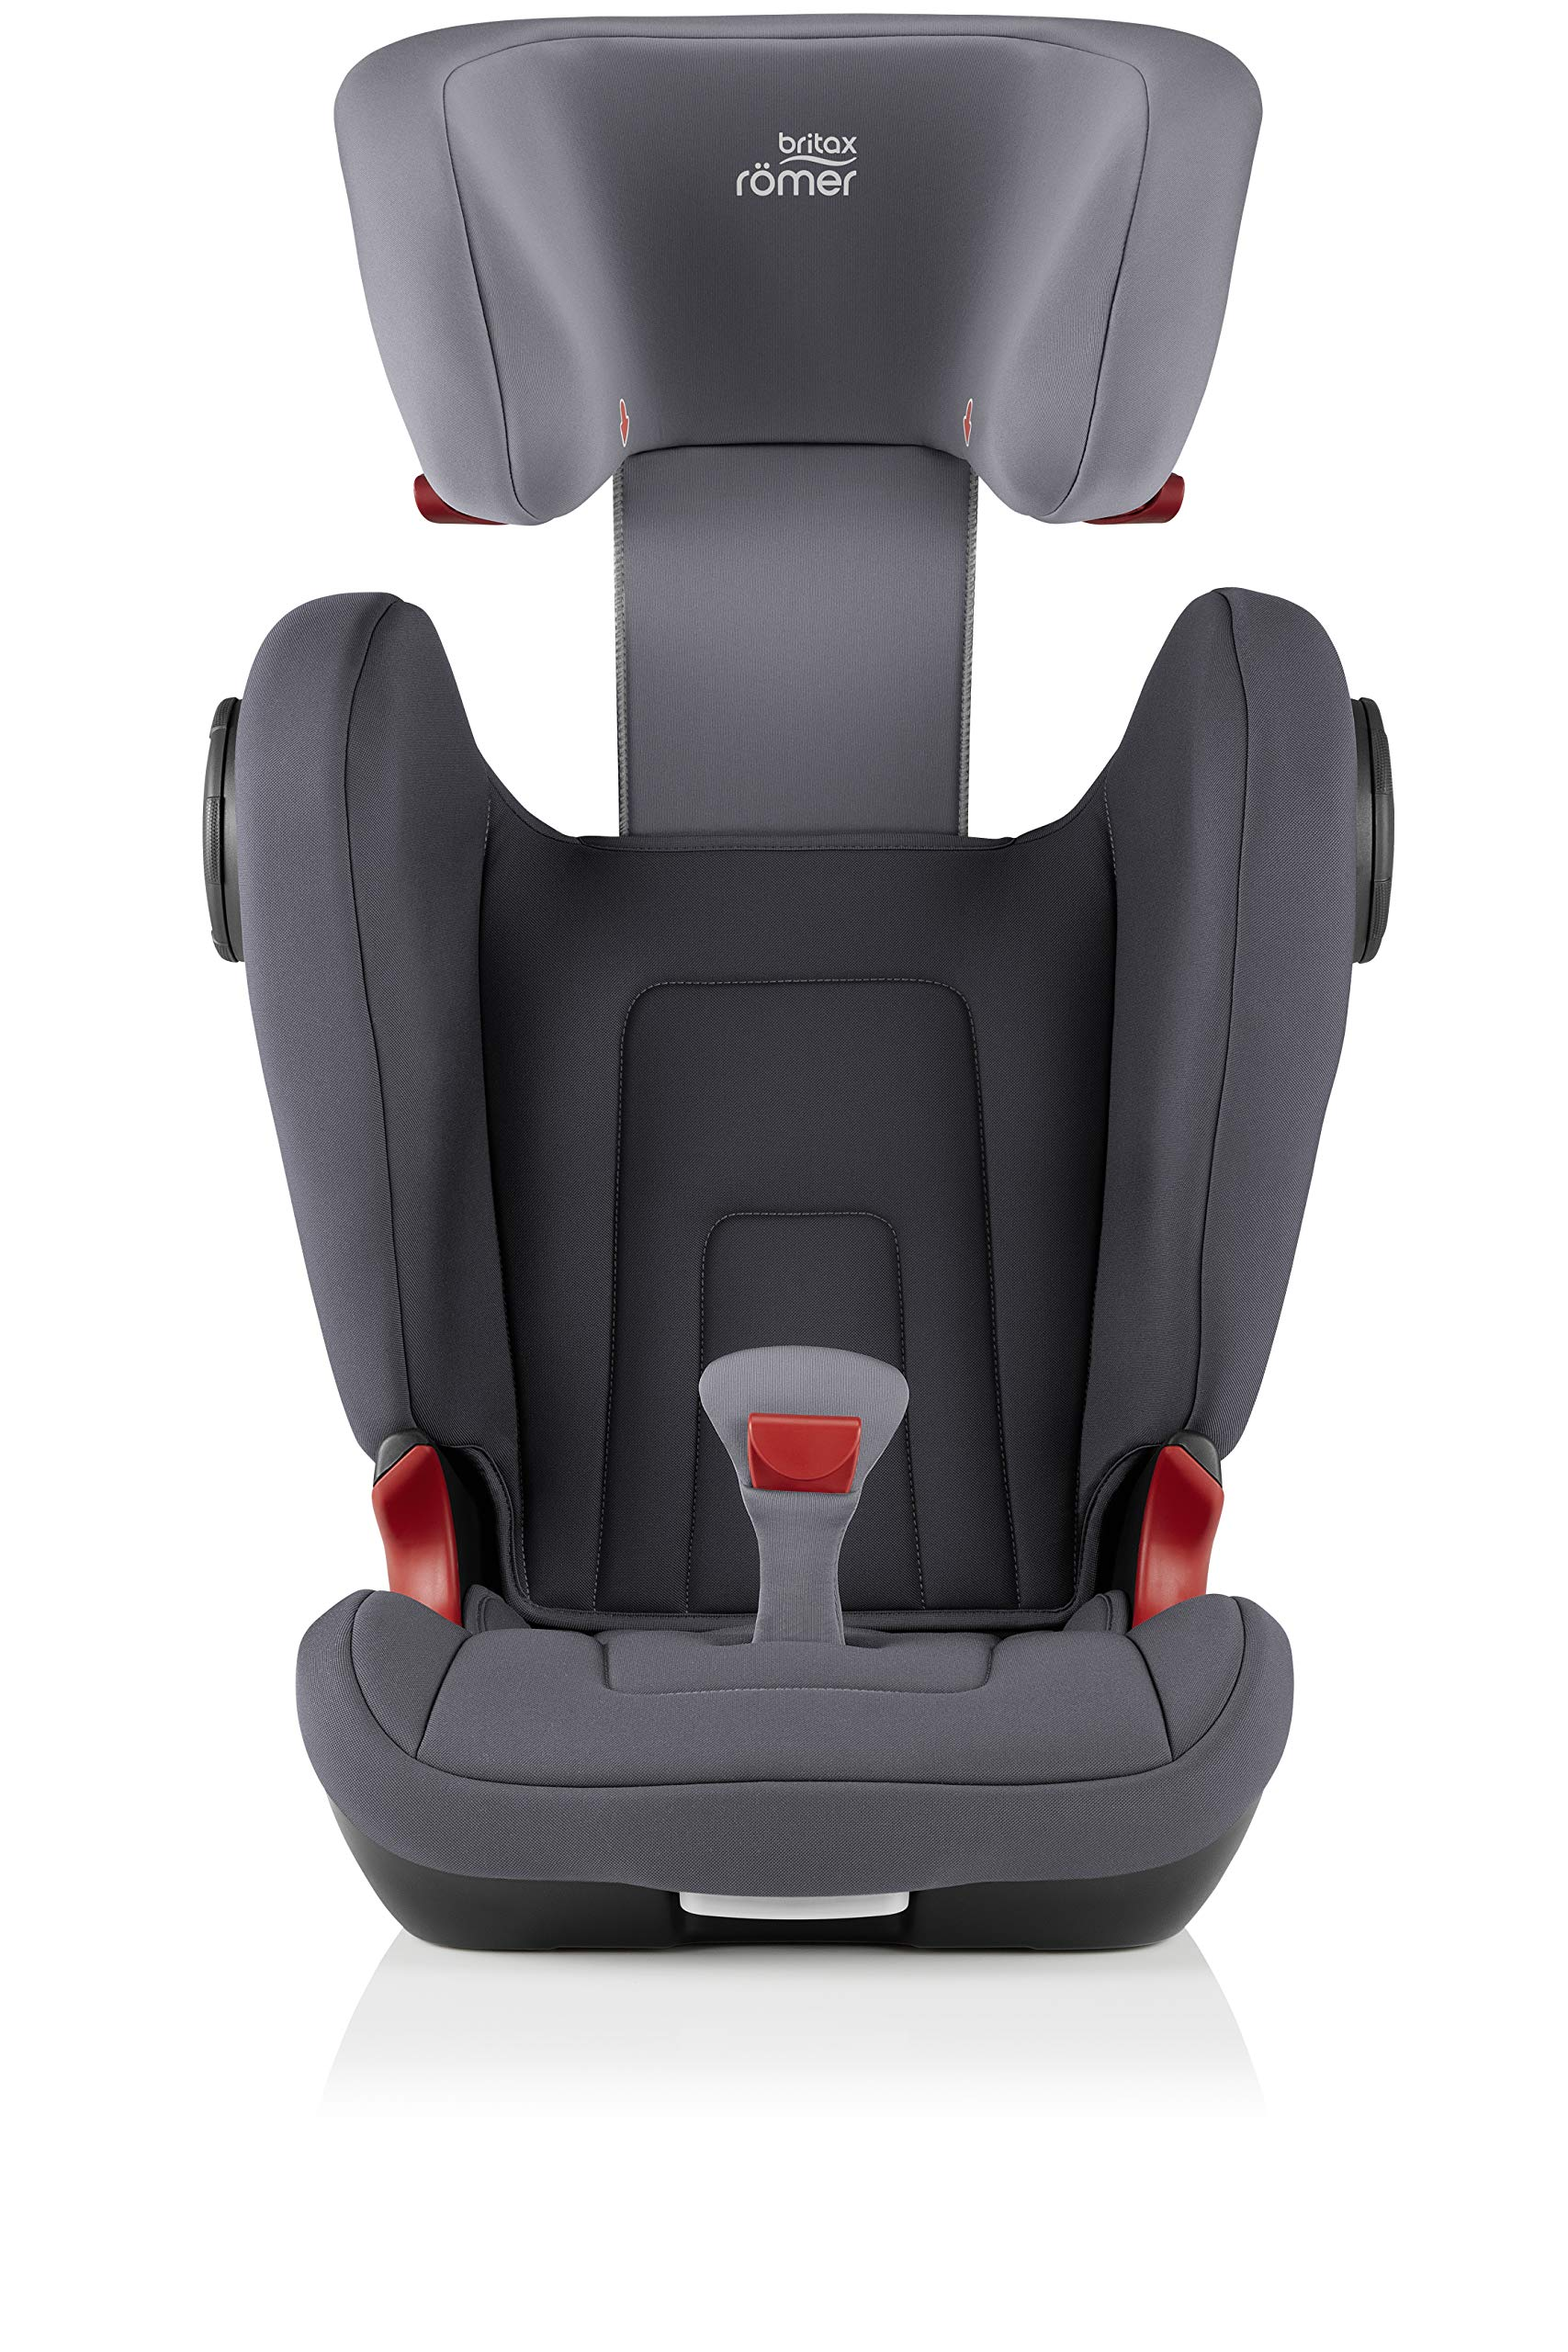 Britax Römer KIDFIX² S Group 2-3 (15-36kg) Car Seat - Storm Grey  Advanced side impact protection - sict offers superior protection to your child in the event of a side collision. reducing impact forces by minimising the distance between the car and the car seat. Secure guard - helps to protect your child's delicate abdominal area by adding an extra - a 4th - contact point to the 3-point seat belt. High back booster - protects your child in 3 ways: provides head to hip protection; belt guides provide correct positioning of the seat belt and the padded headrest provides safety and comfort. 7